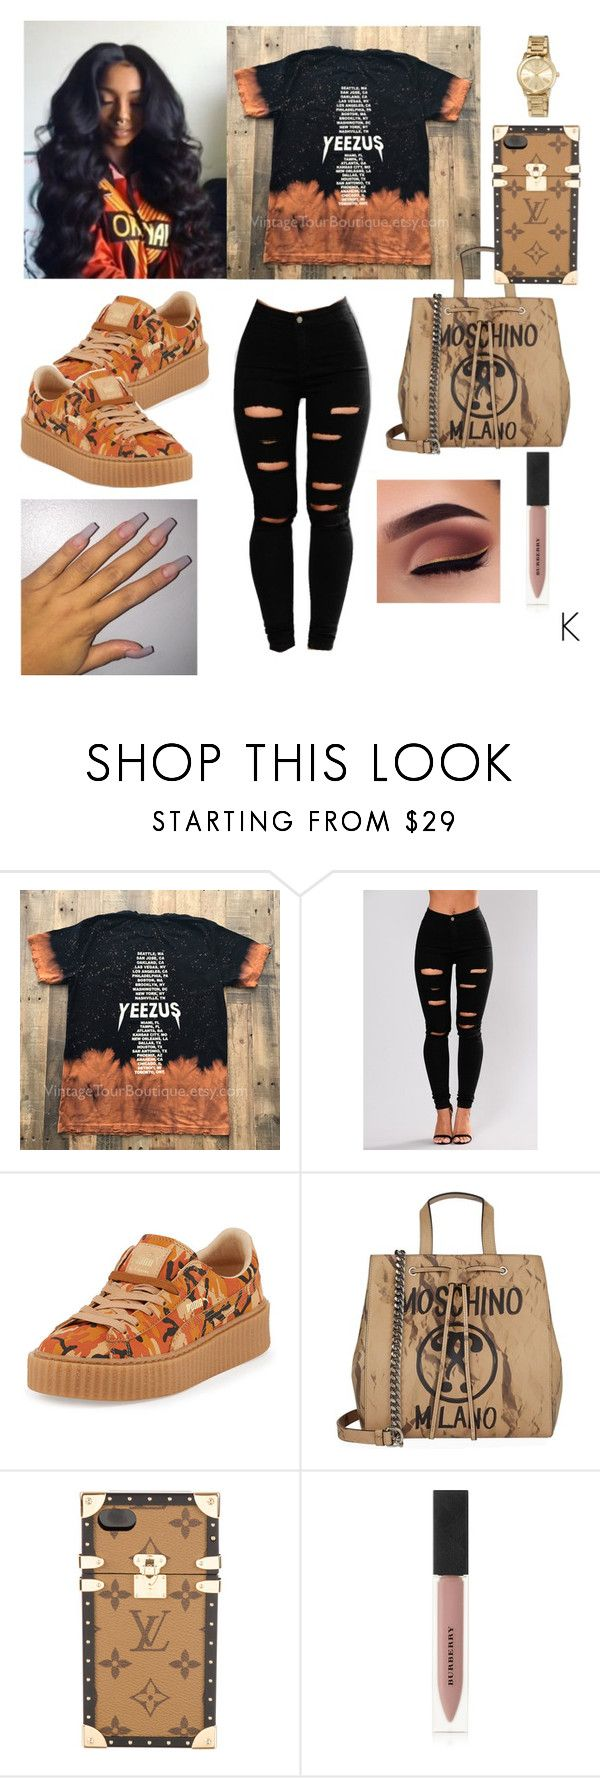 """"""""""" by xo-kyndahl-xo ❤ liked on Polyvore featuring Puma, Moschino, Louis Vuitton, Burberry and MICHAEL Michael Kors"""